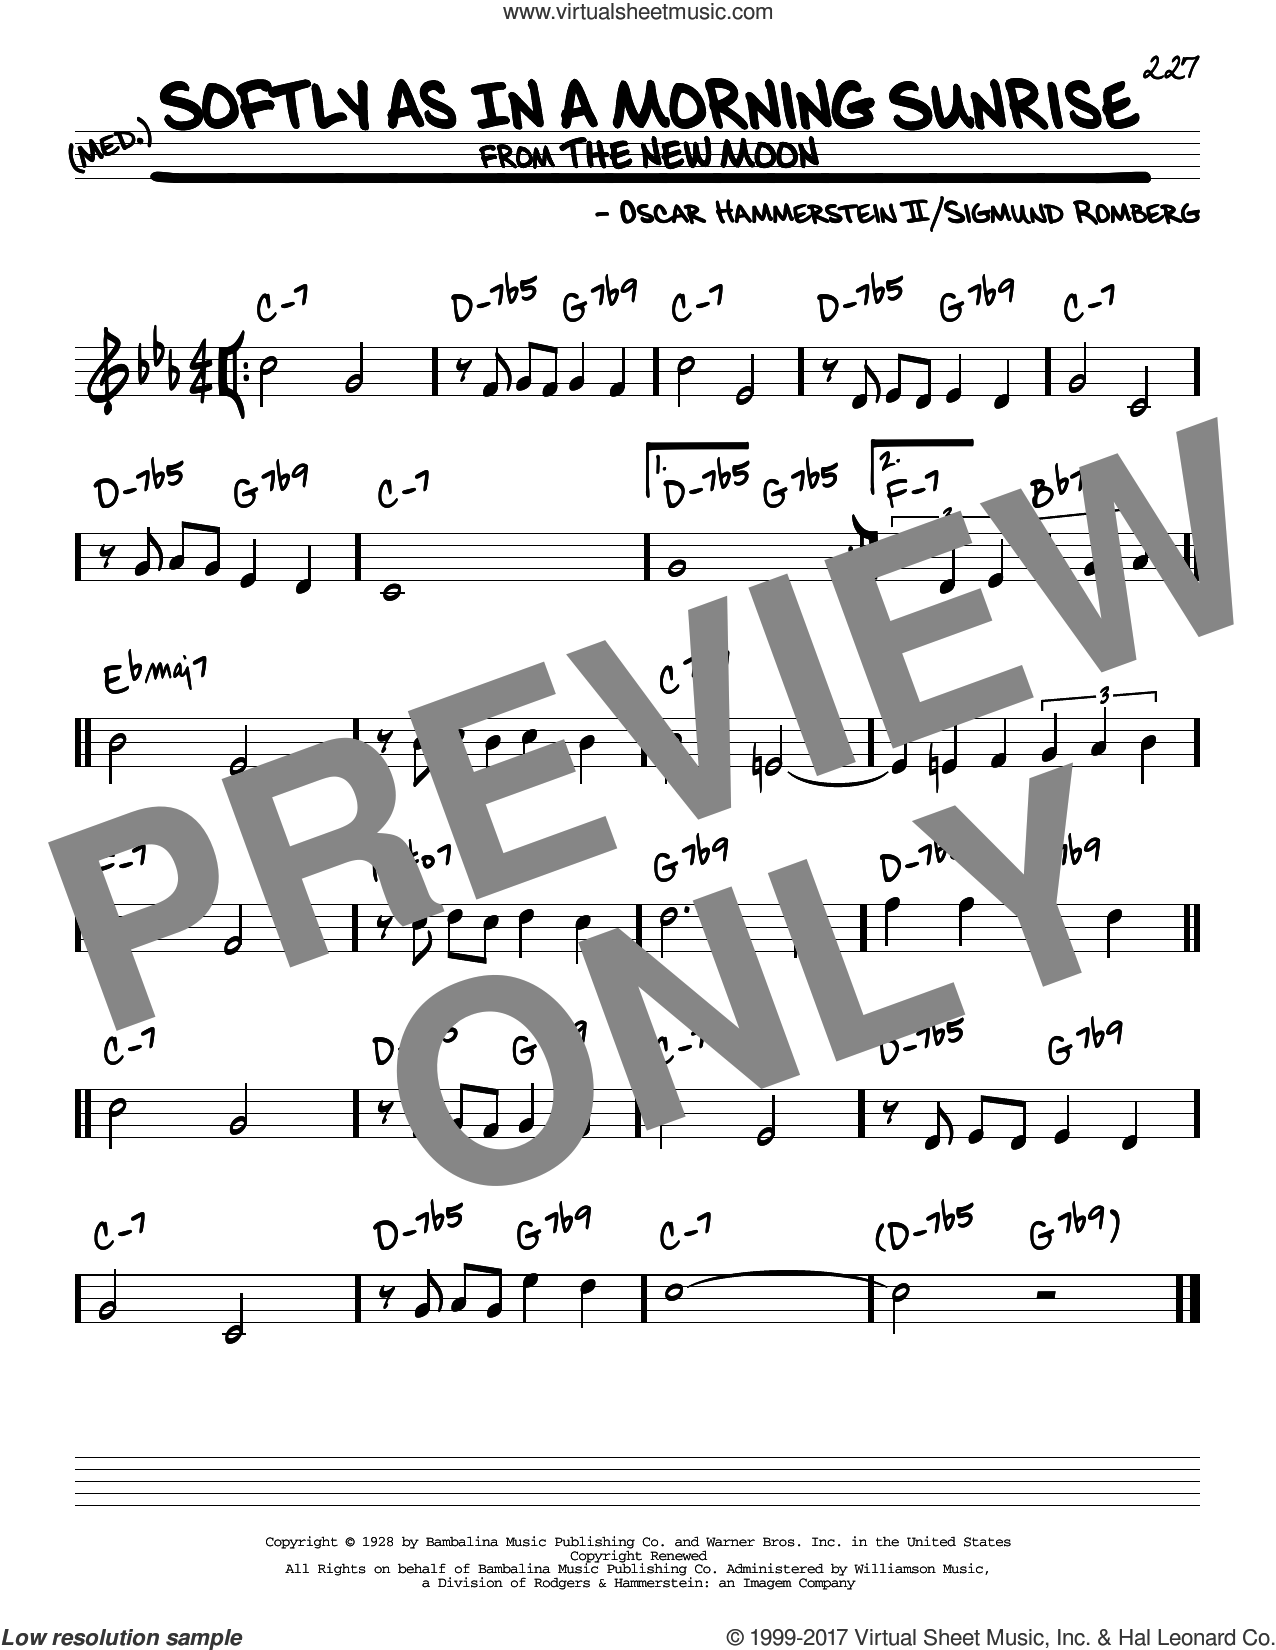 Softly As In A Morning Sunrise sheet music for voice and other instruments (real book) by Oscar II Hammerstein and Sigmund Romberg, intermediate skill level